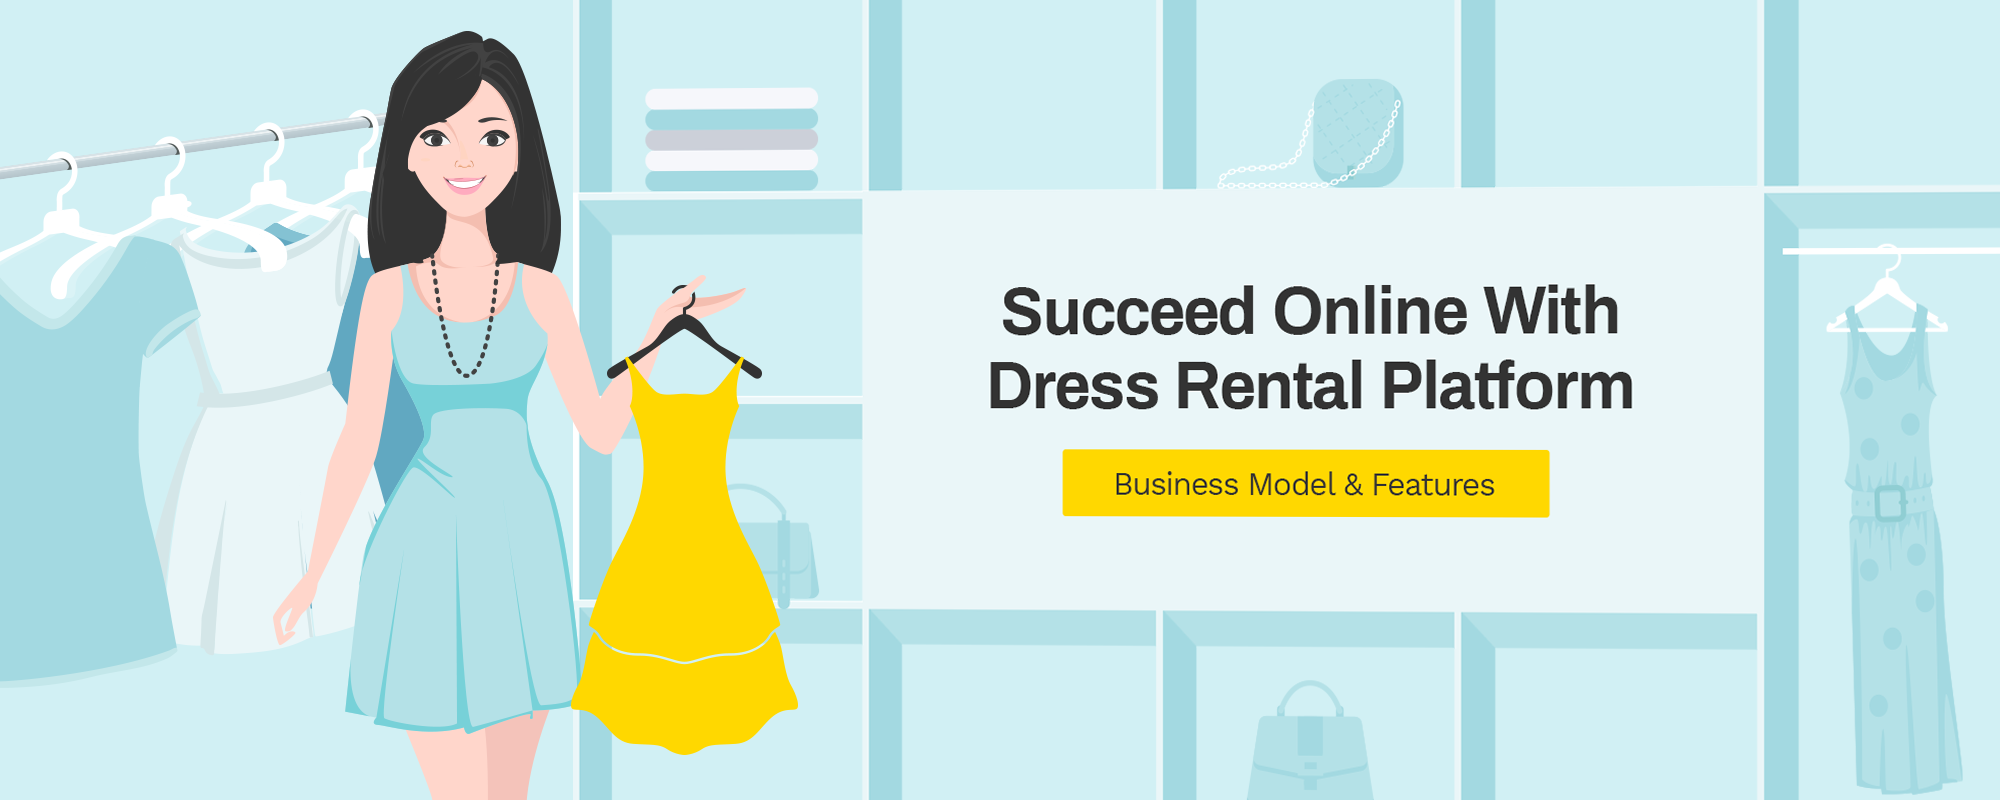 How To Start An Online Dress Rental Business – Understanding The Business Model And Website Features